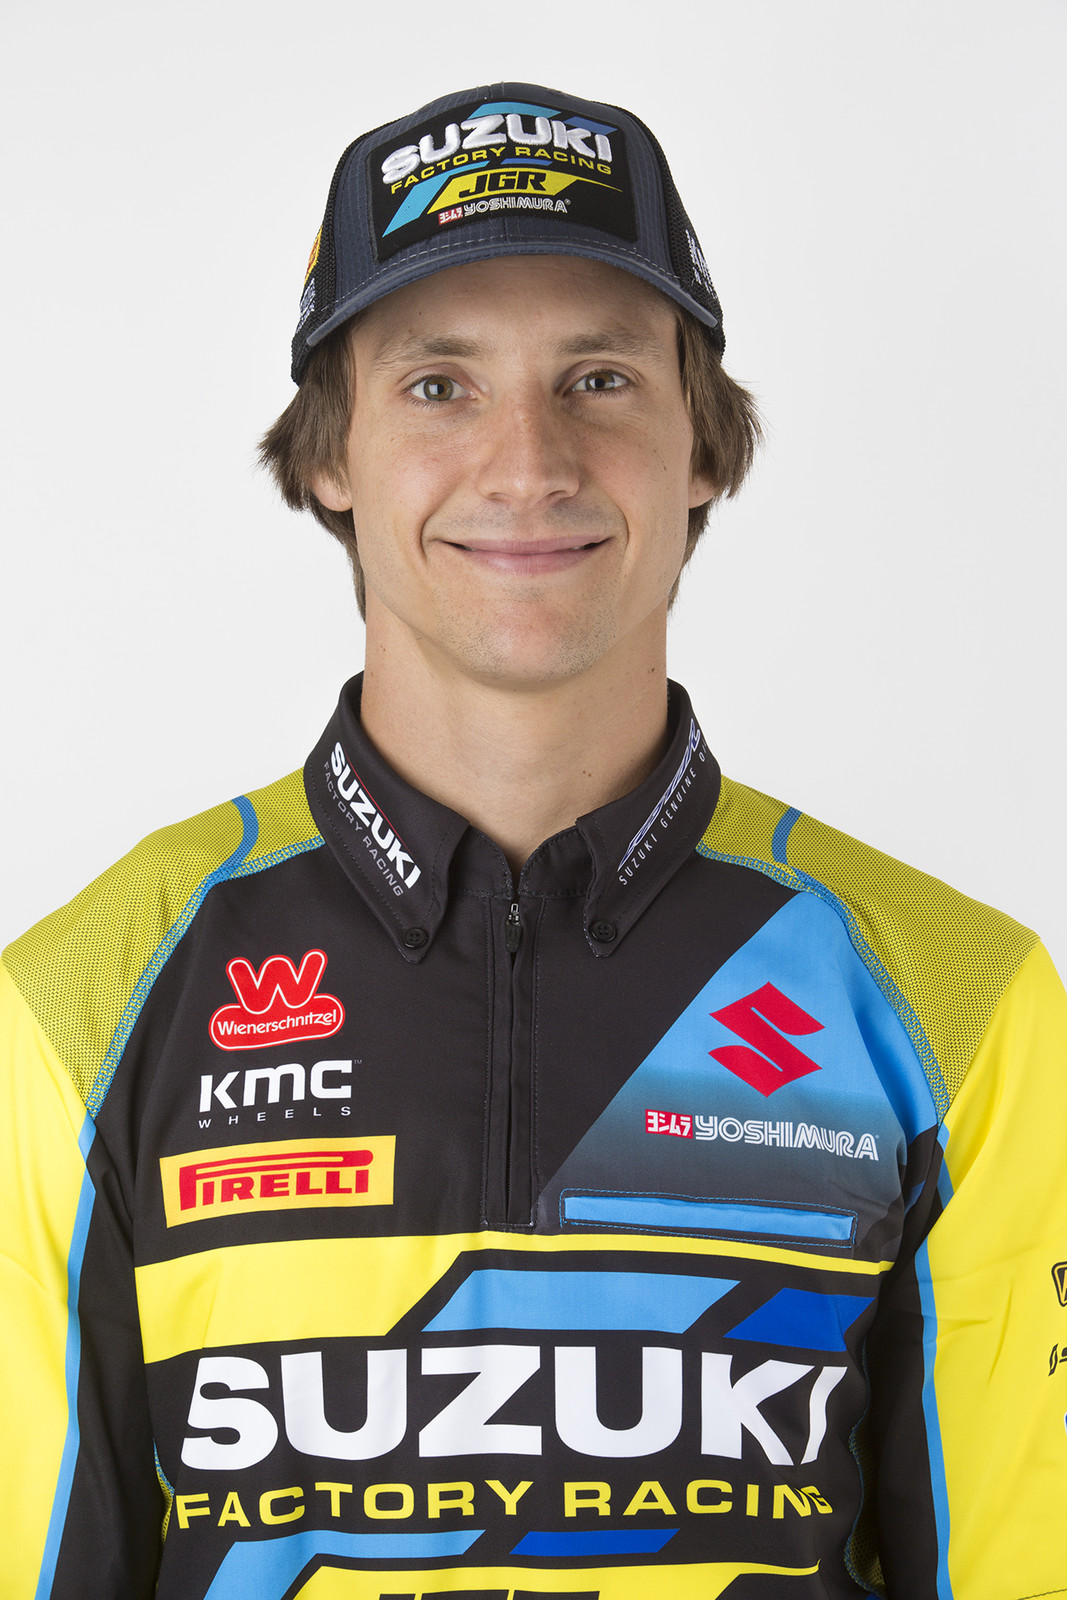 Fredrik Noren to Fill-In for Hill on the JGRMX/Yoshimura/Suzuki Team